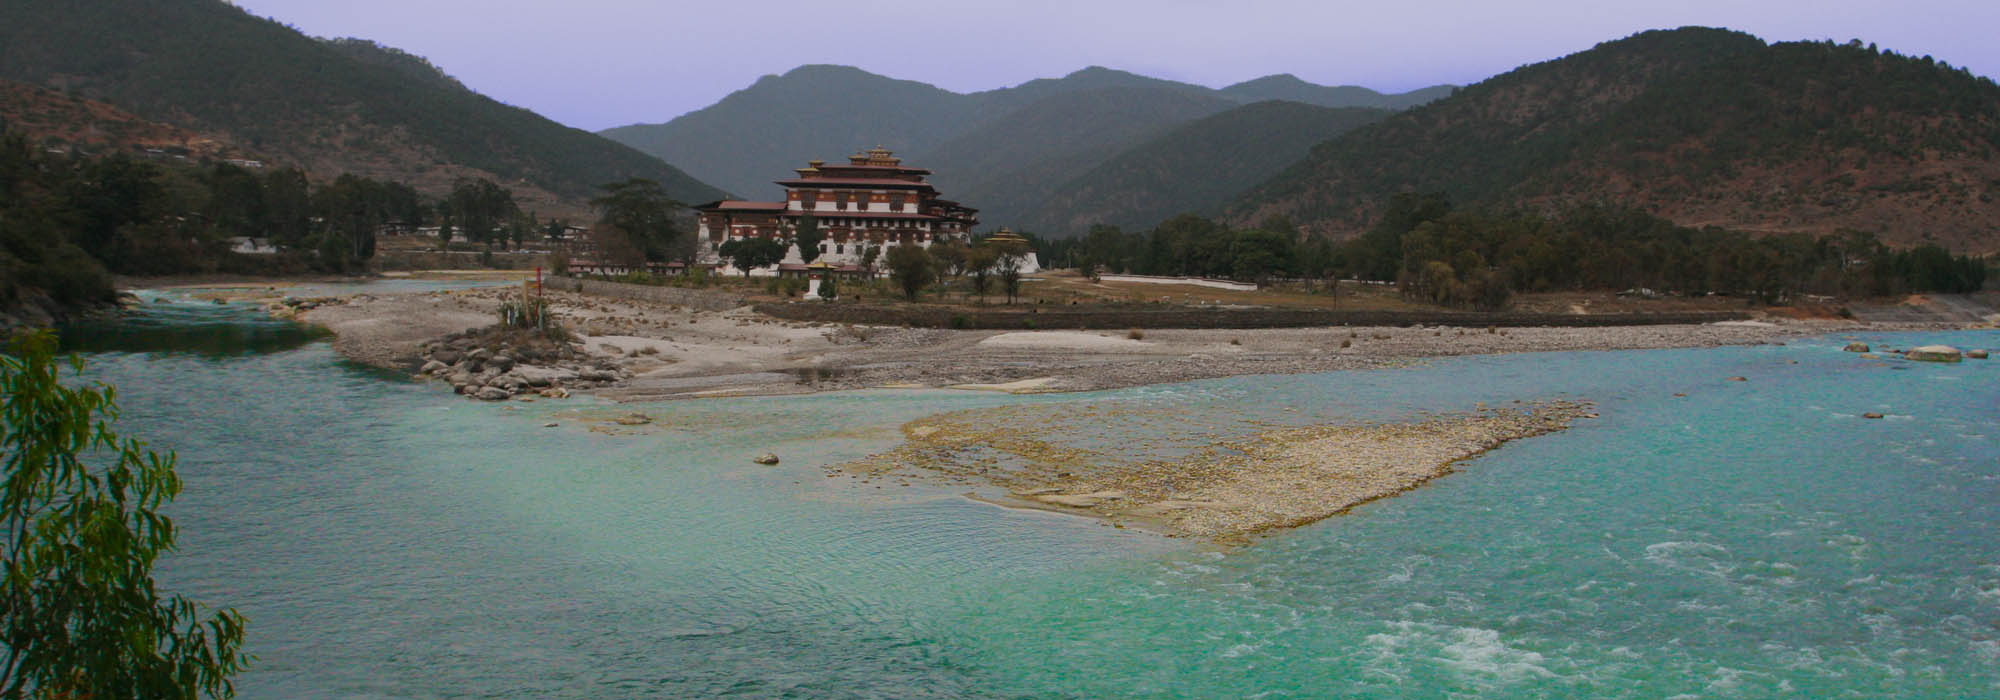 Bhutan Majestic Travel was extremely helpful and swift in assisting our trip to Bhutan